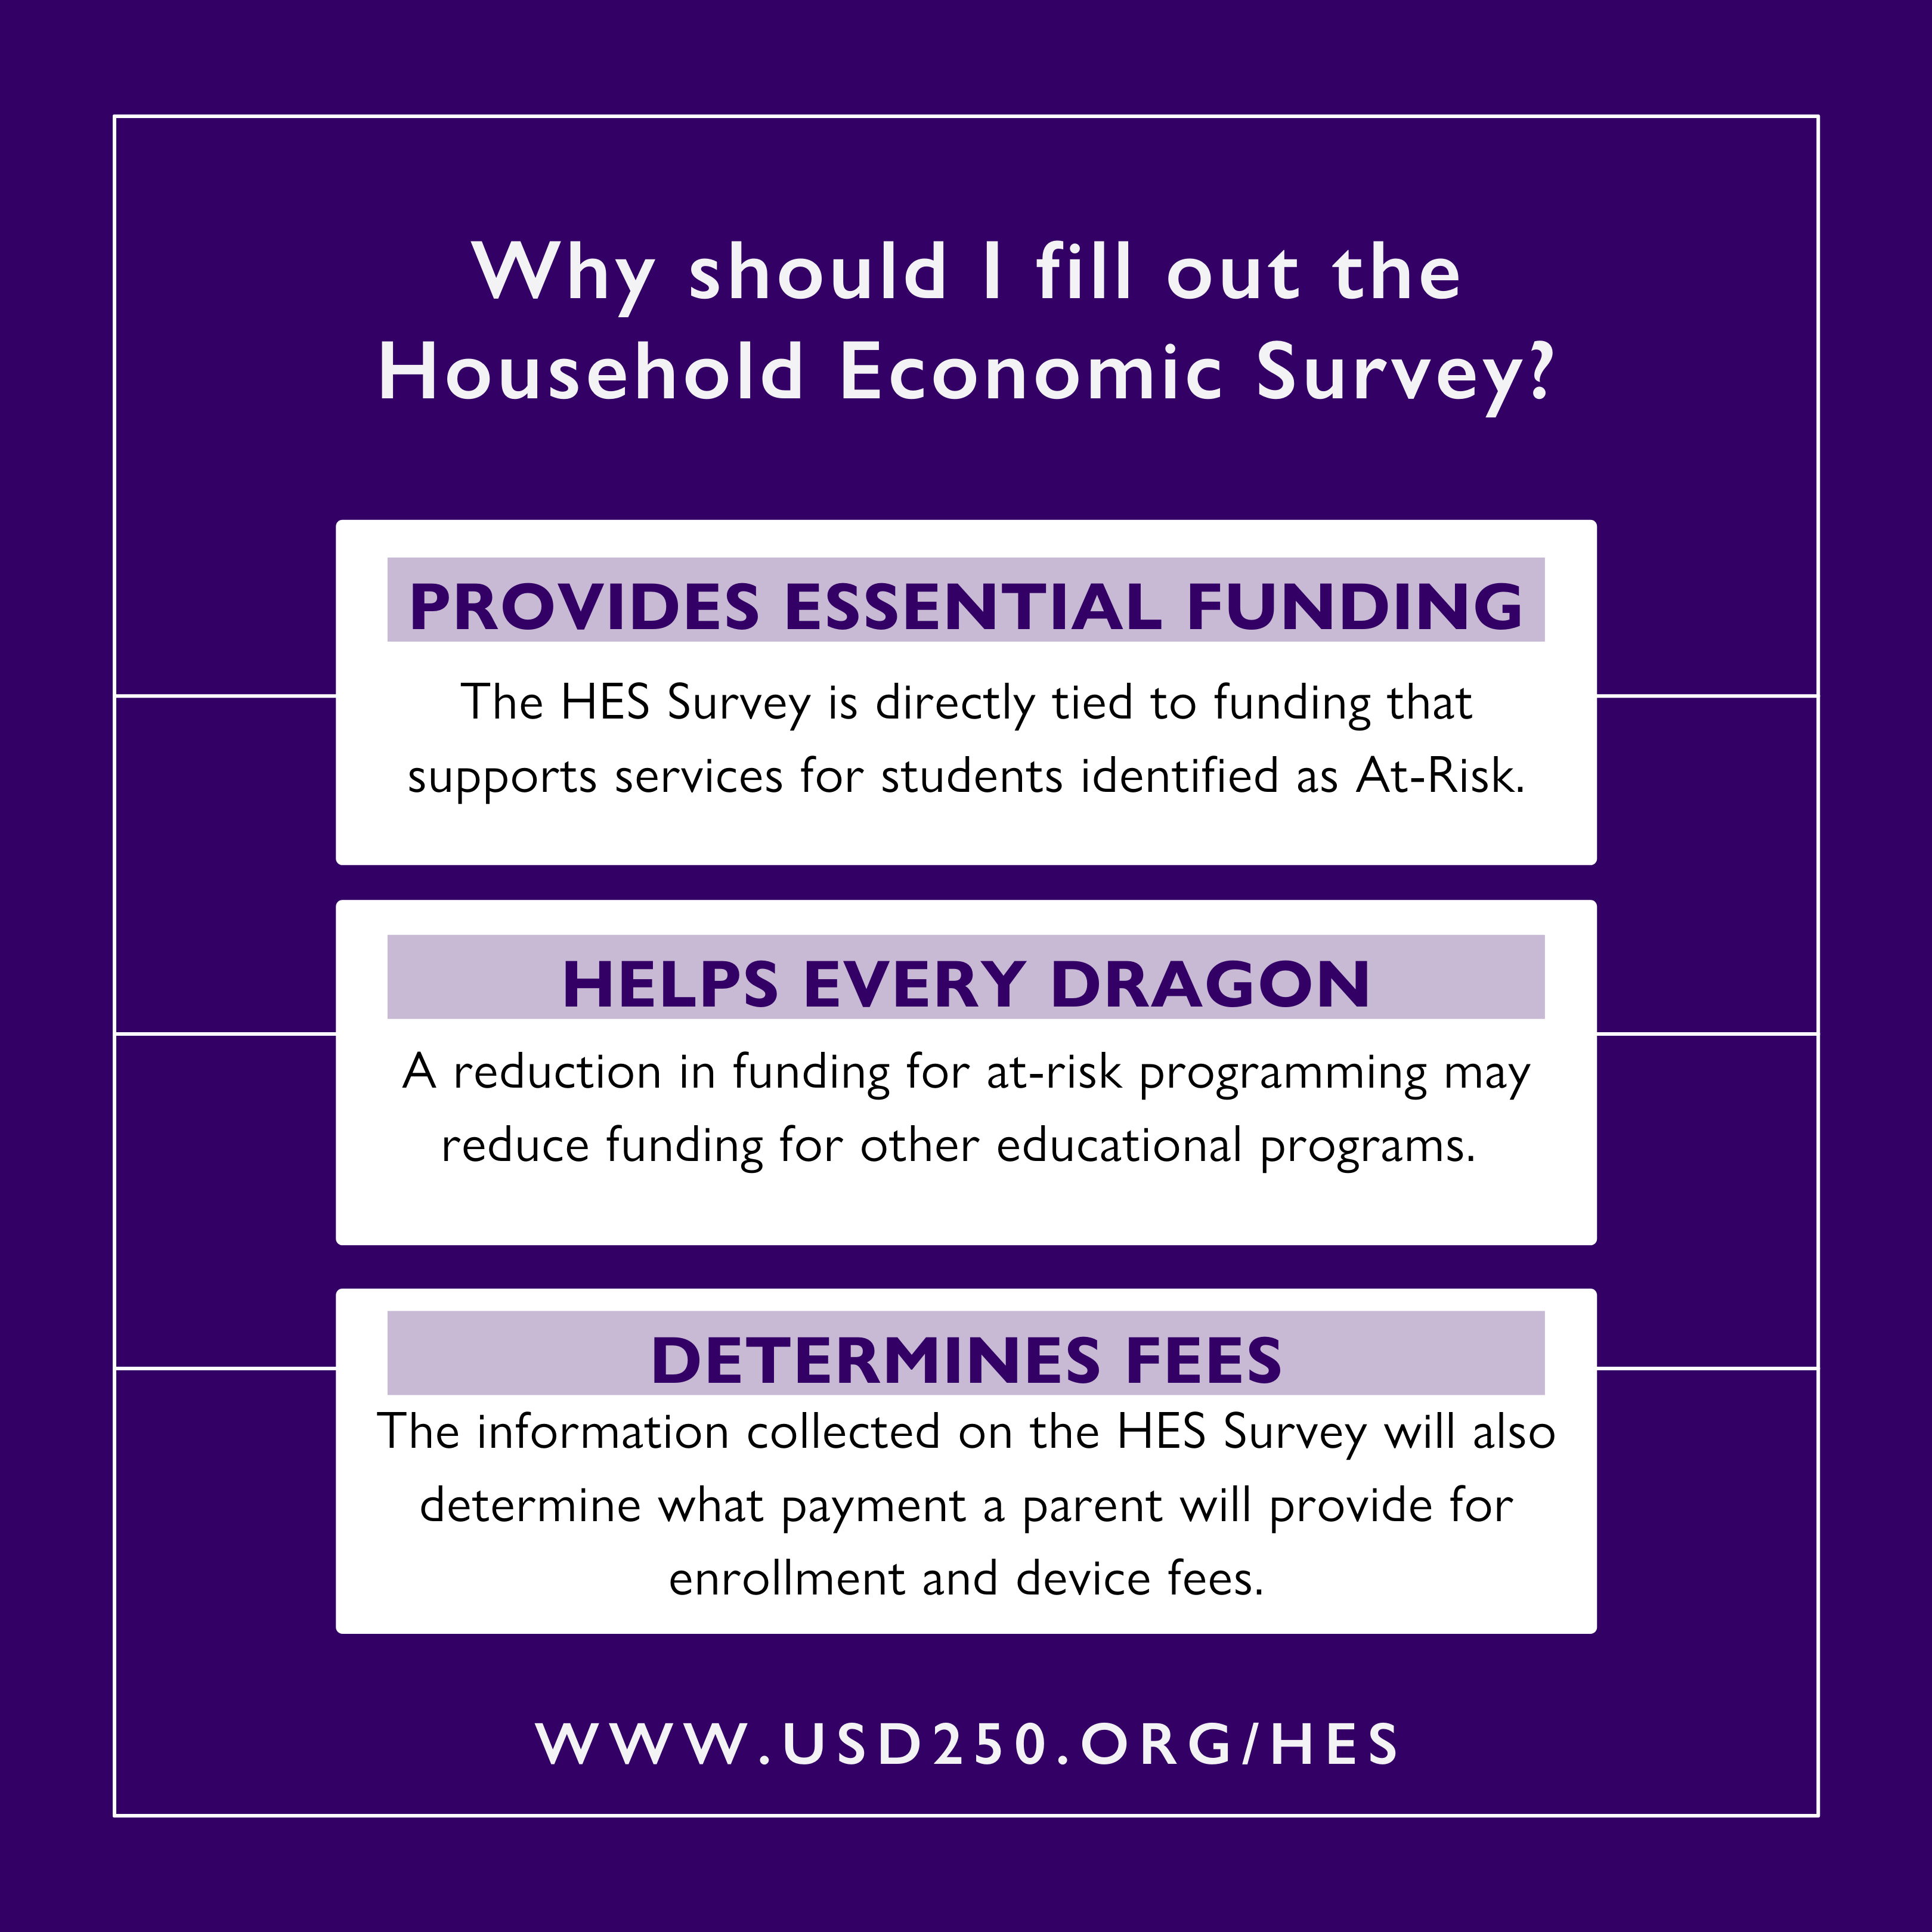 Why should I fill out the HES Survey?